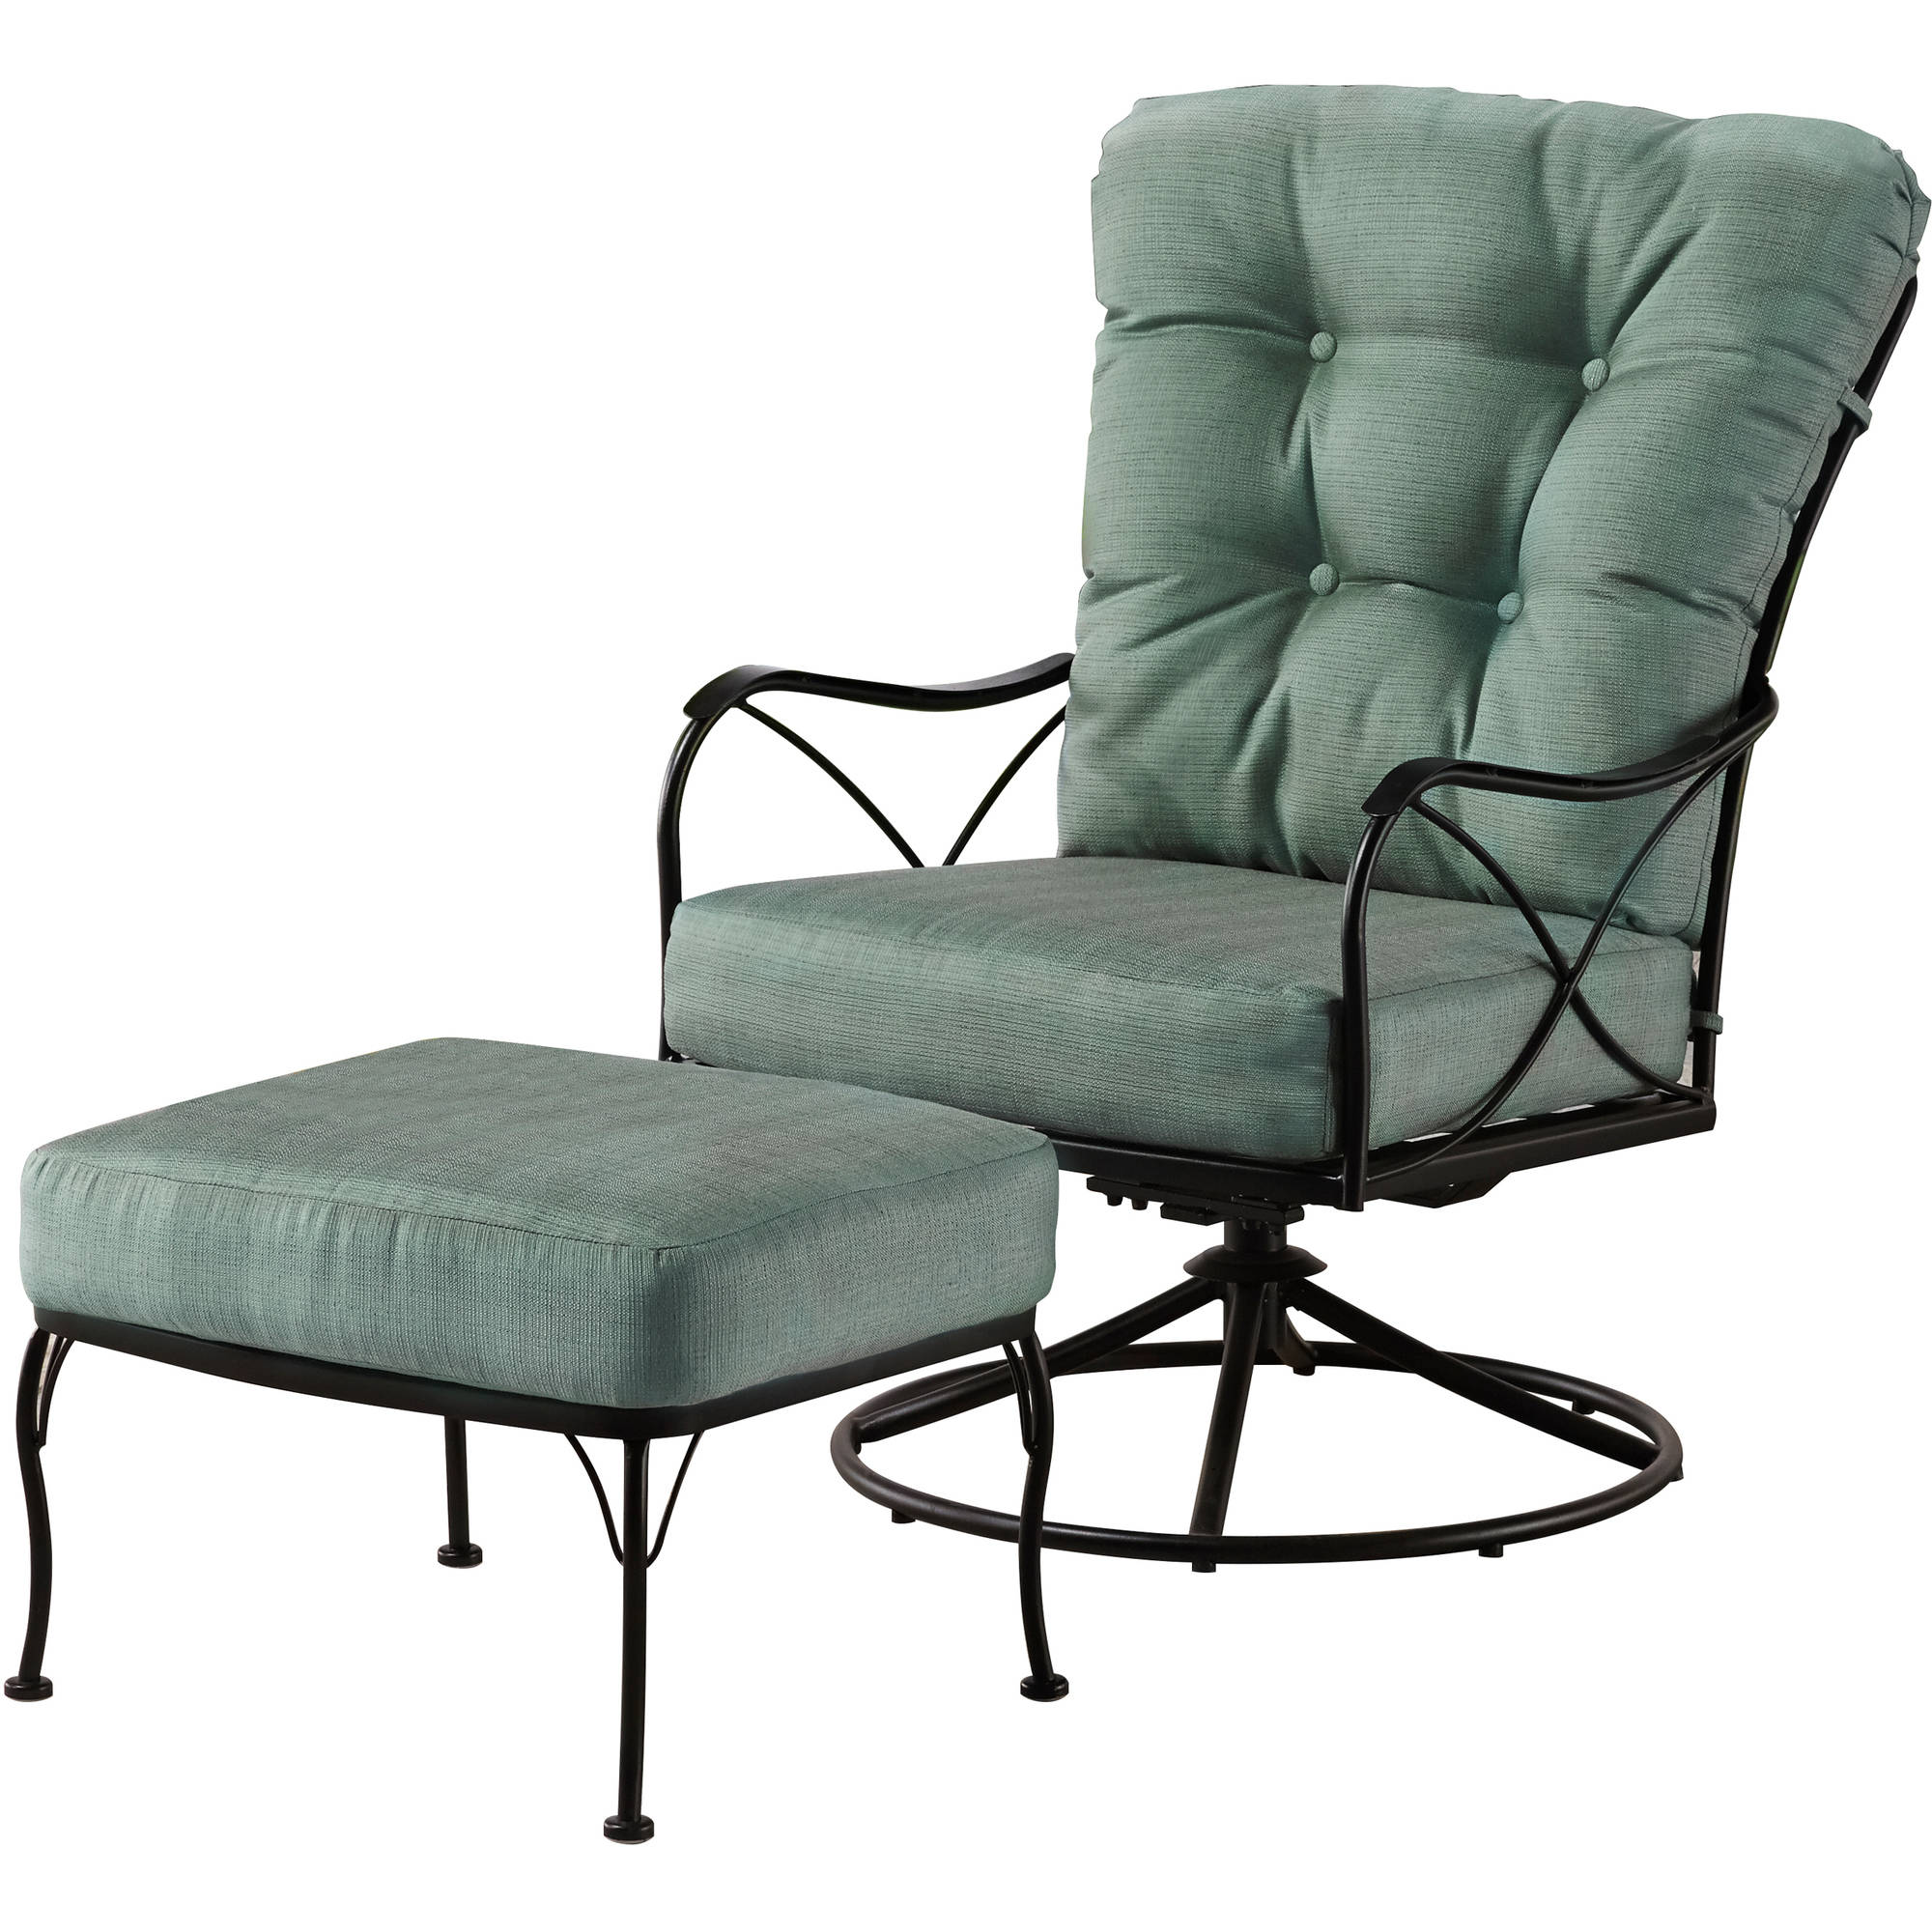 Better Homes and Gardens Seacliff Oversized Cuddle Chair